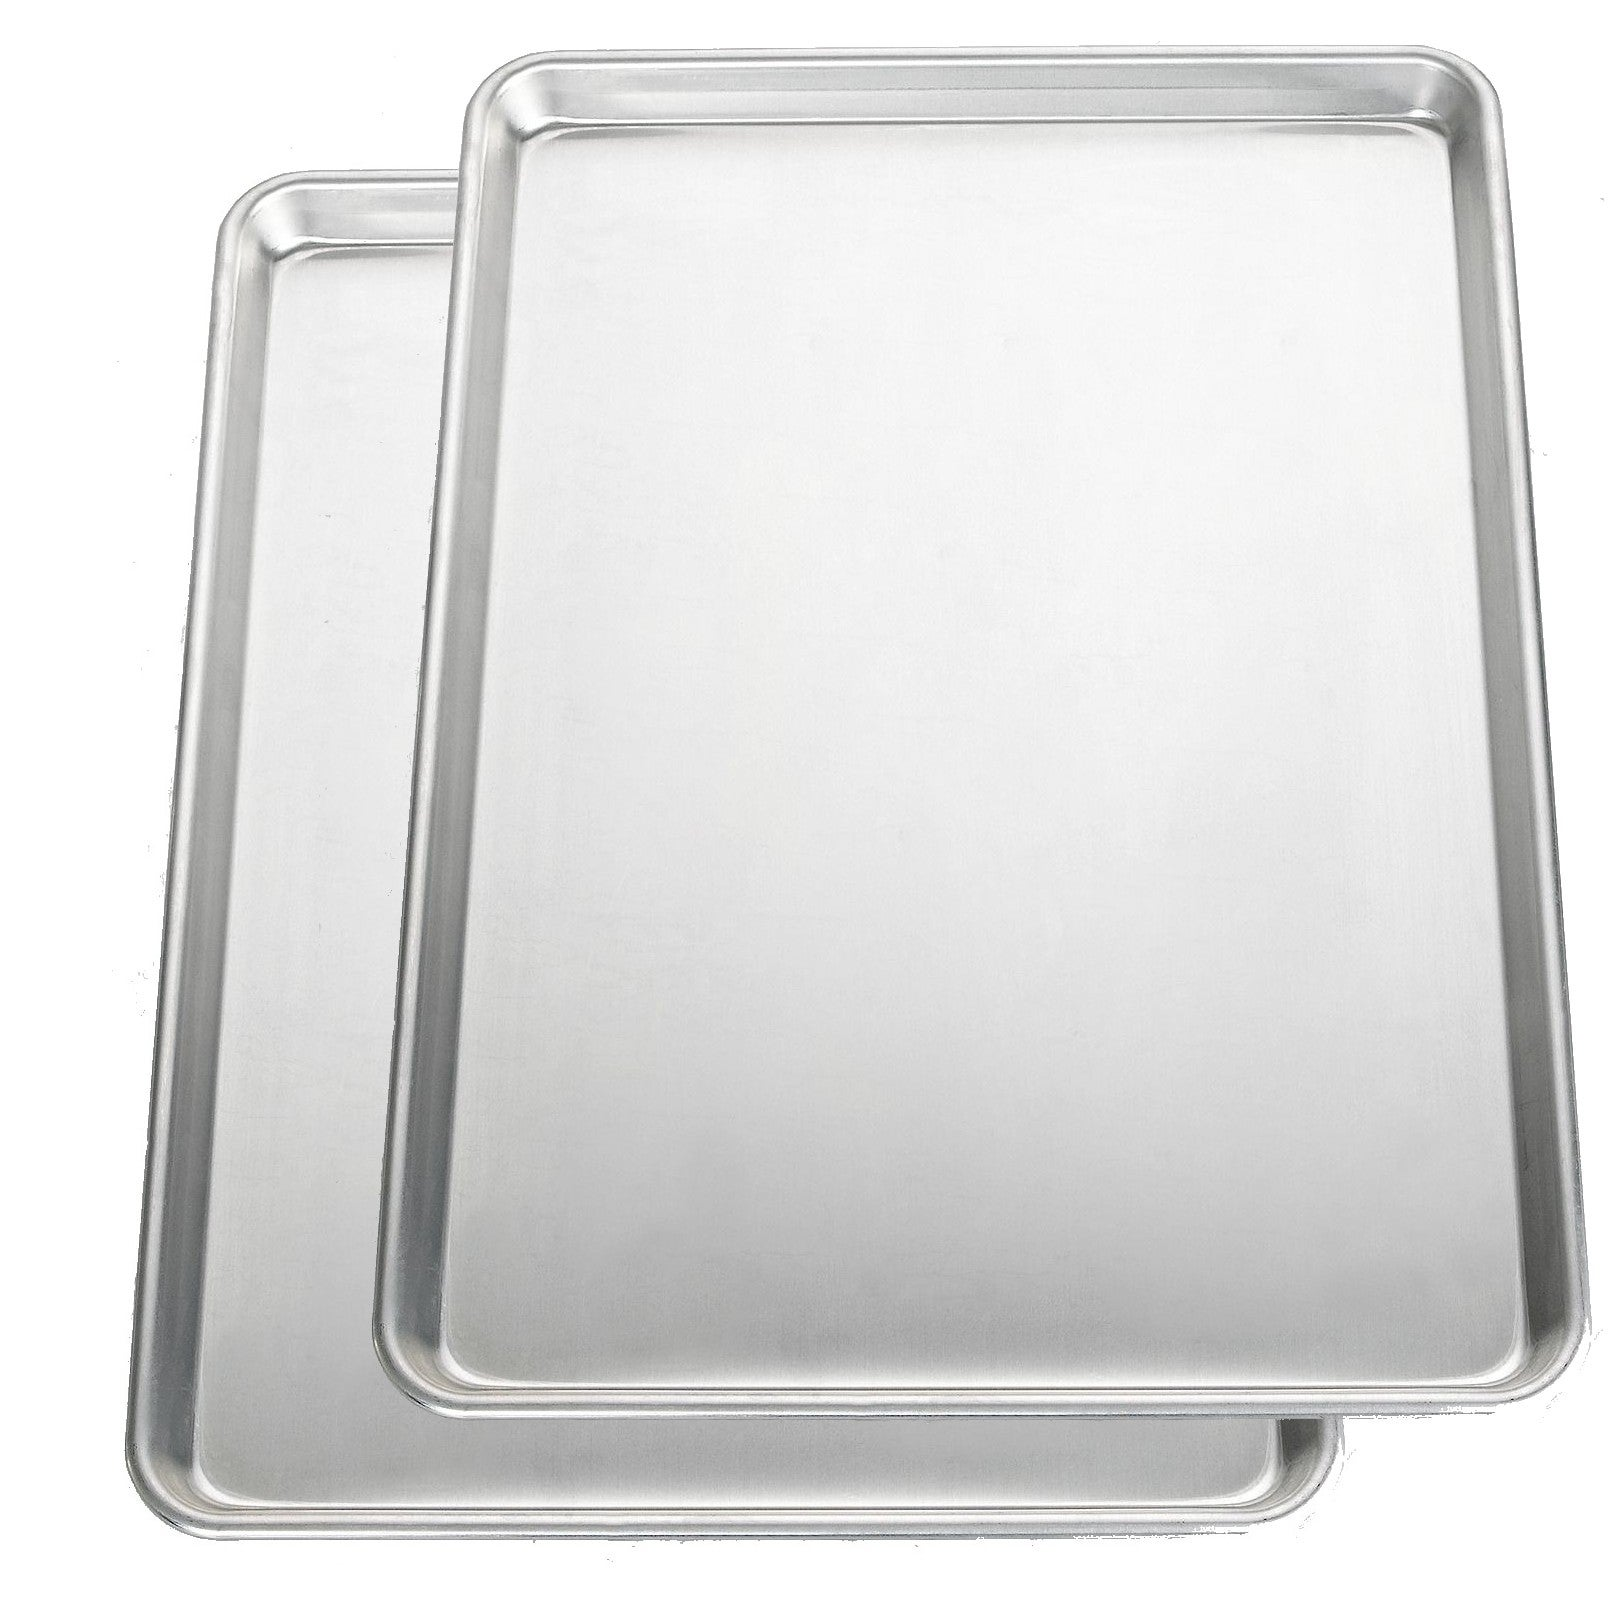 Nordic Ware Bakers Commercial Half Baking Sheets Pack Of 2 Free Shipping On Orders Over 45 7879708